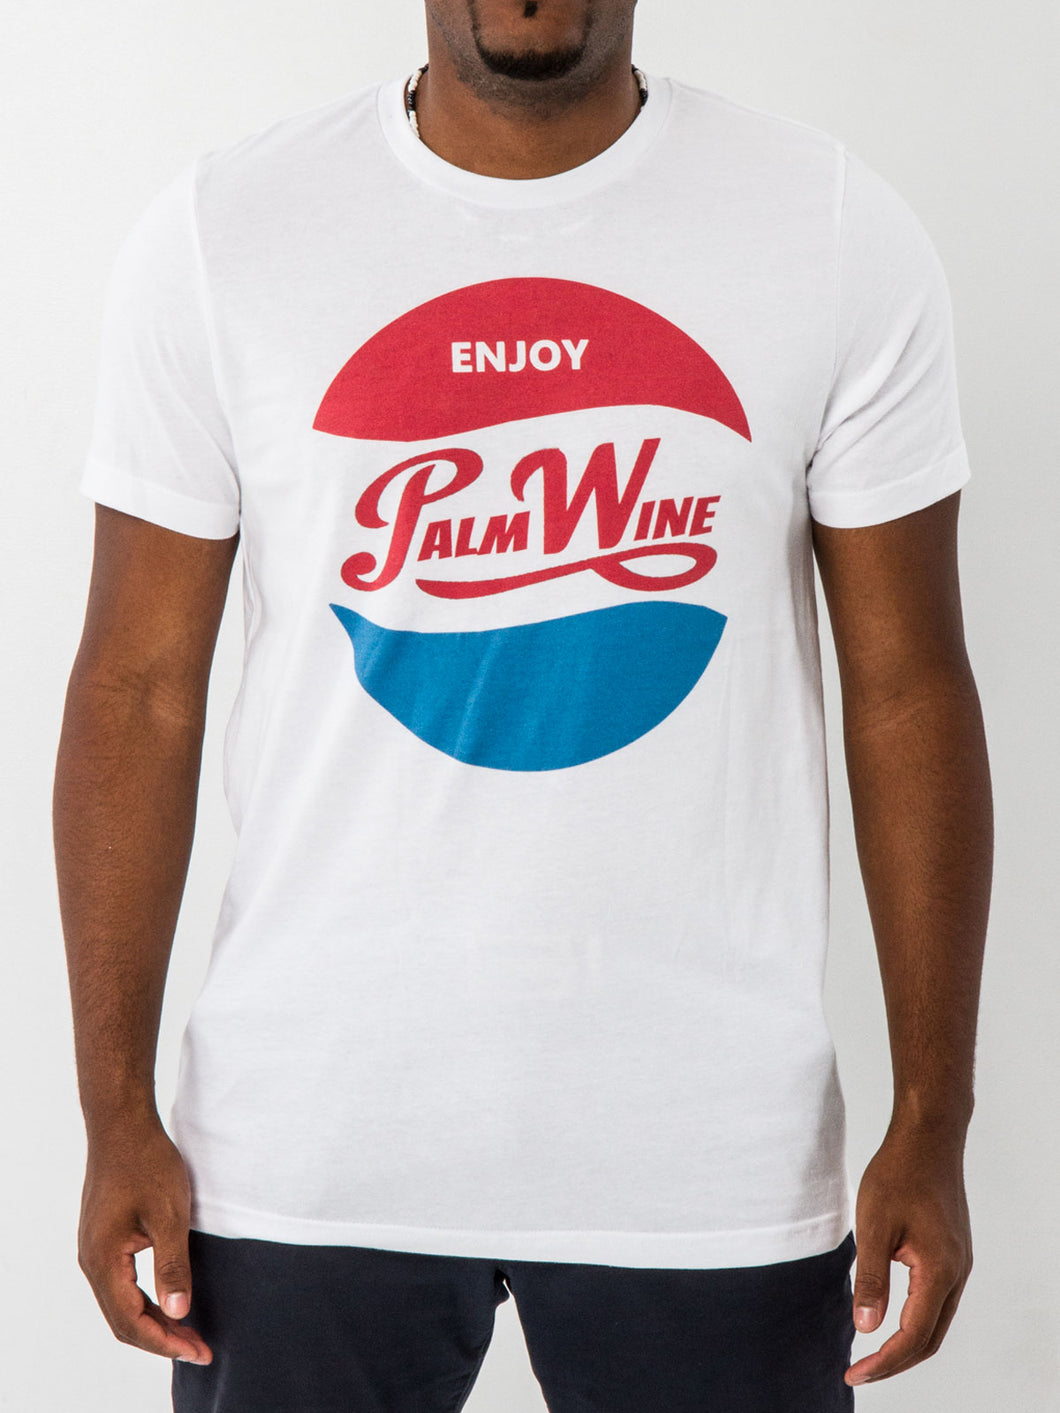 Enjoy Palm Wine T-Shirt